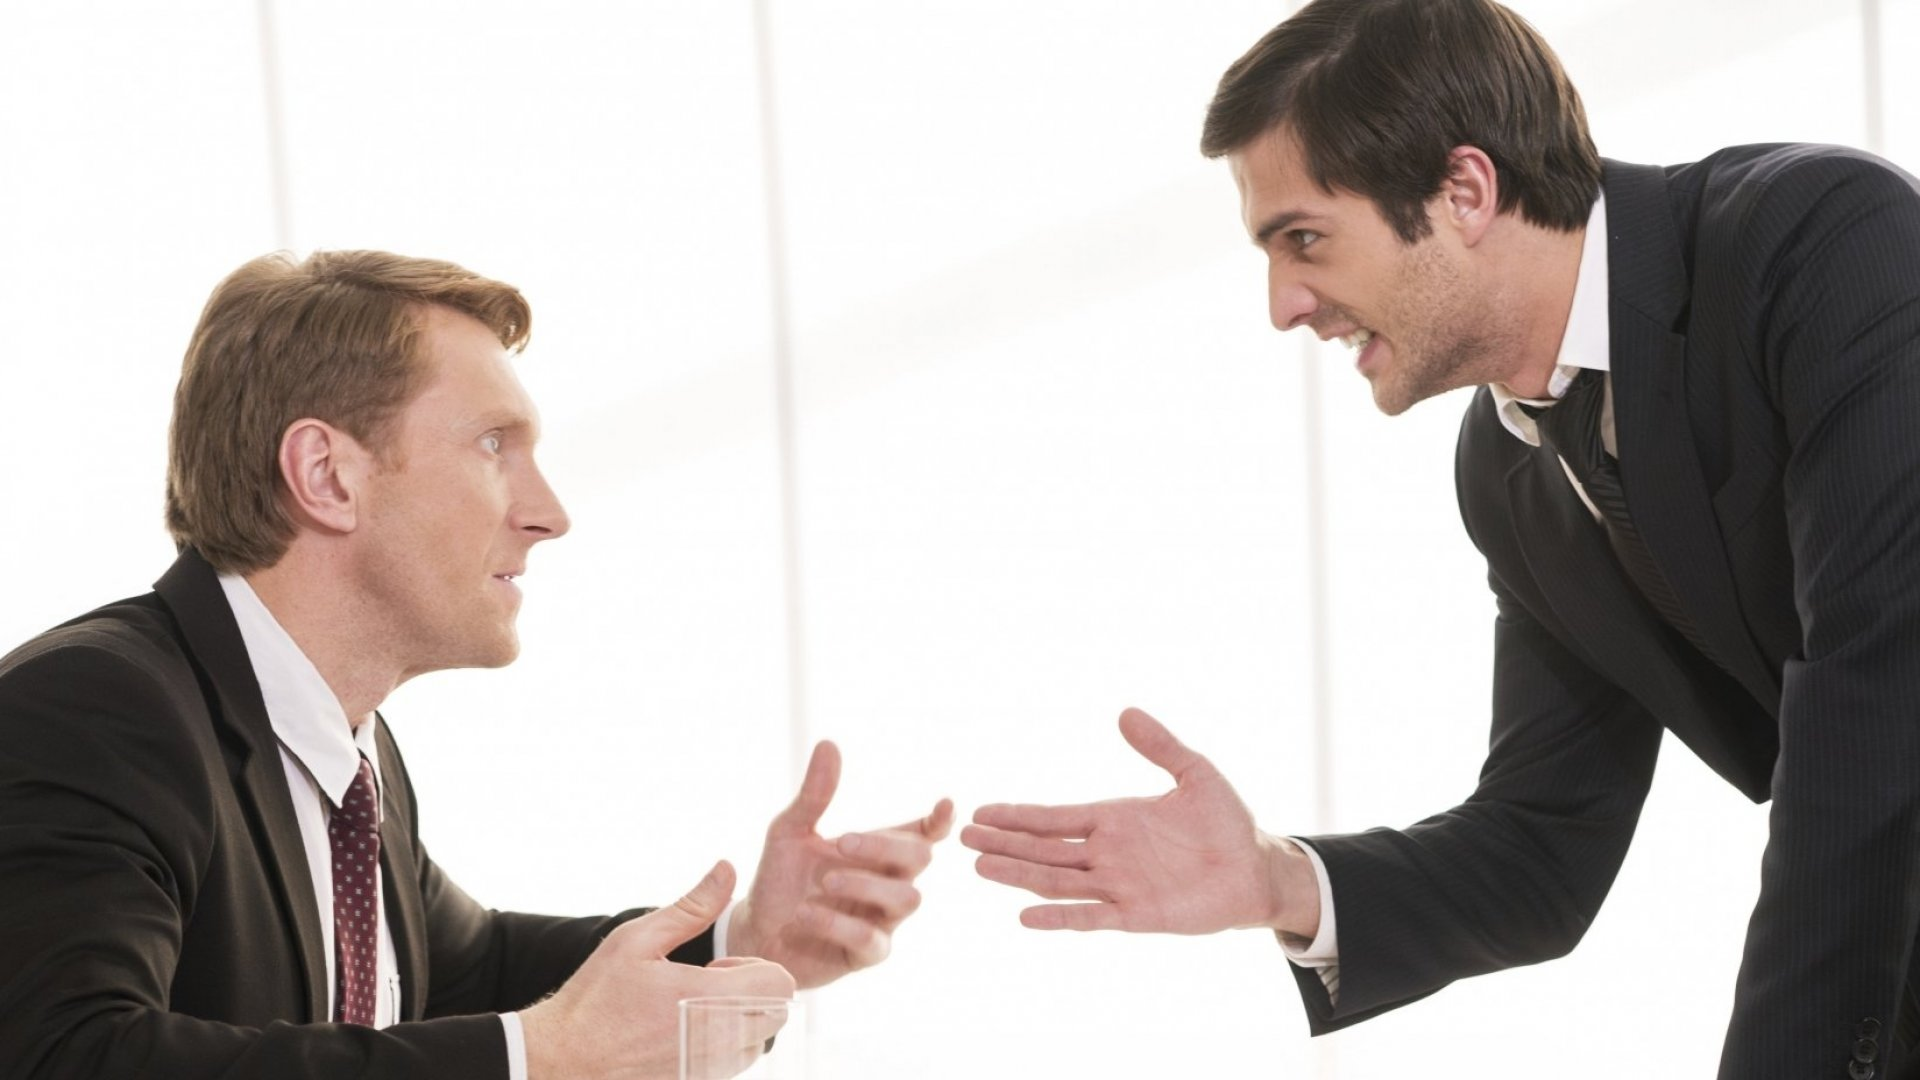 Want to Get Better Ideas From Your Employees? Change Your Body Language